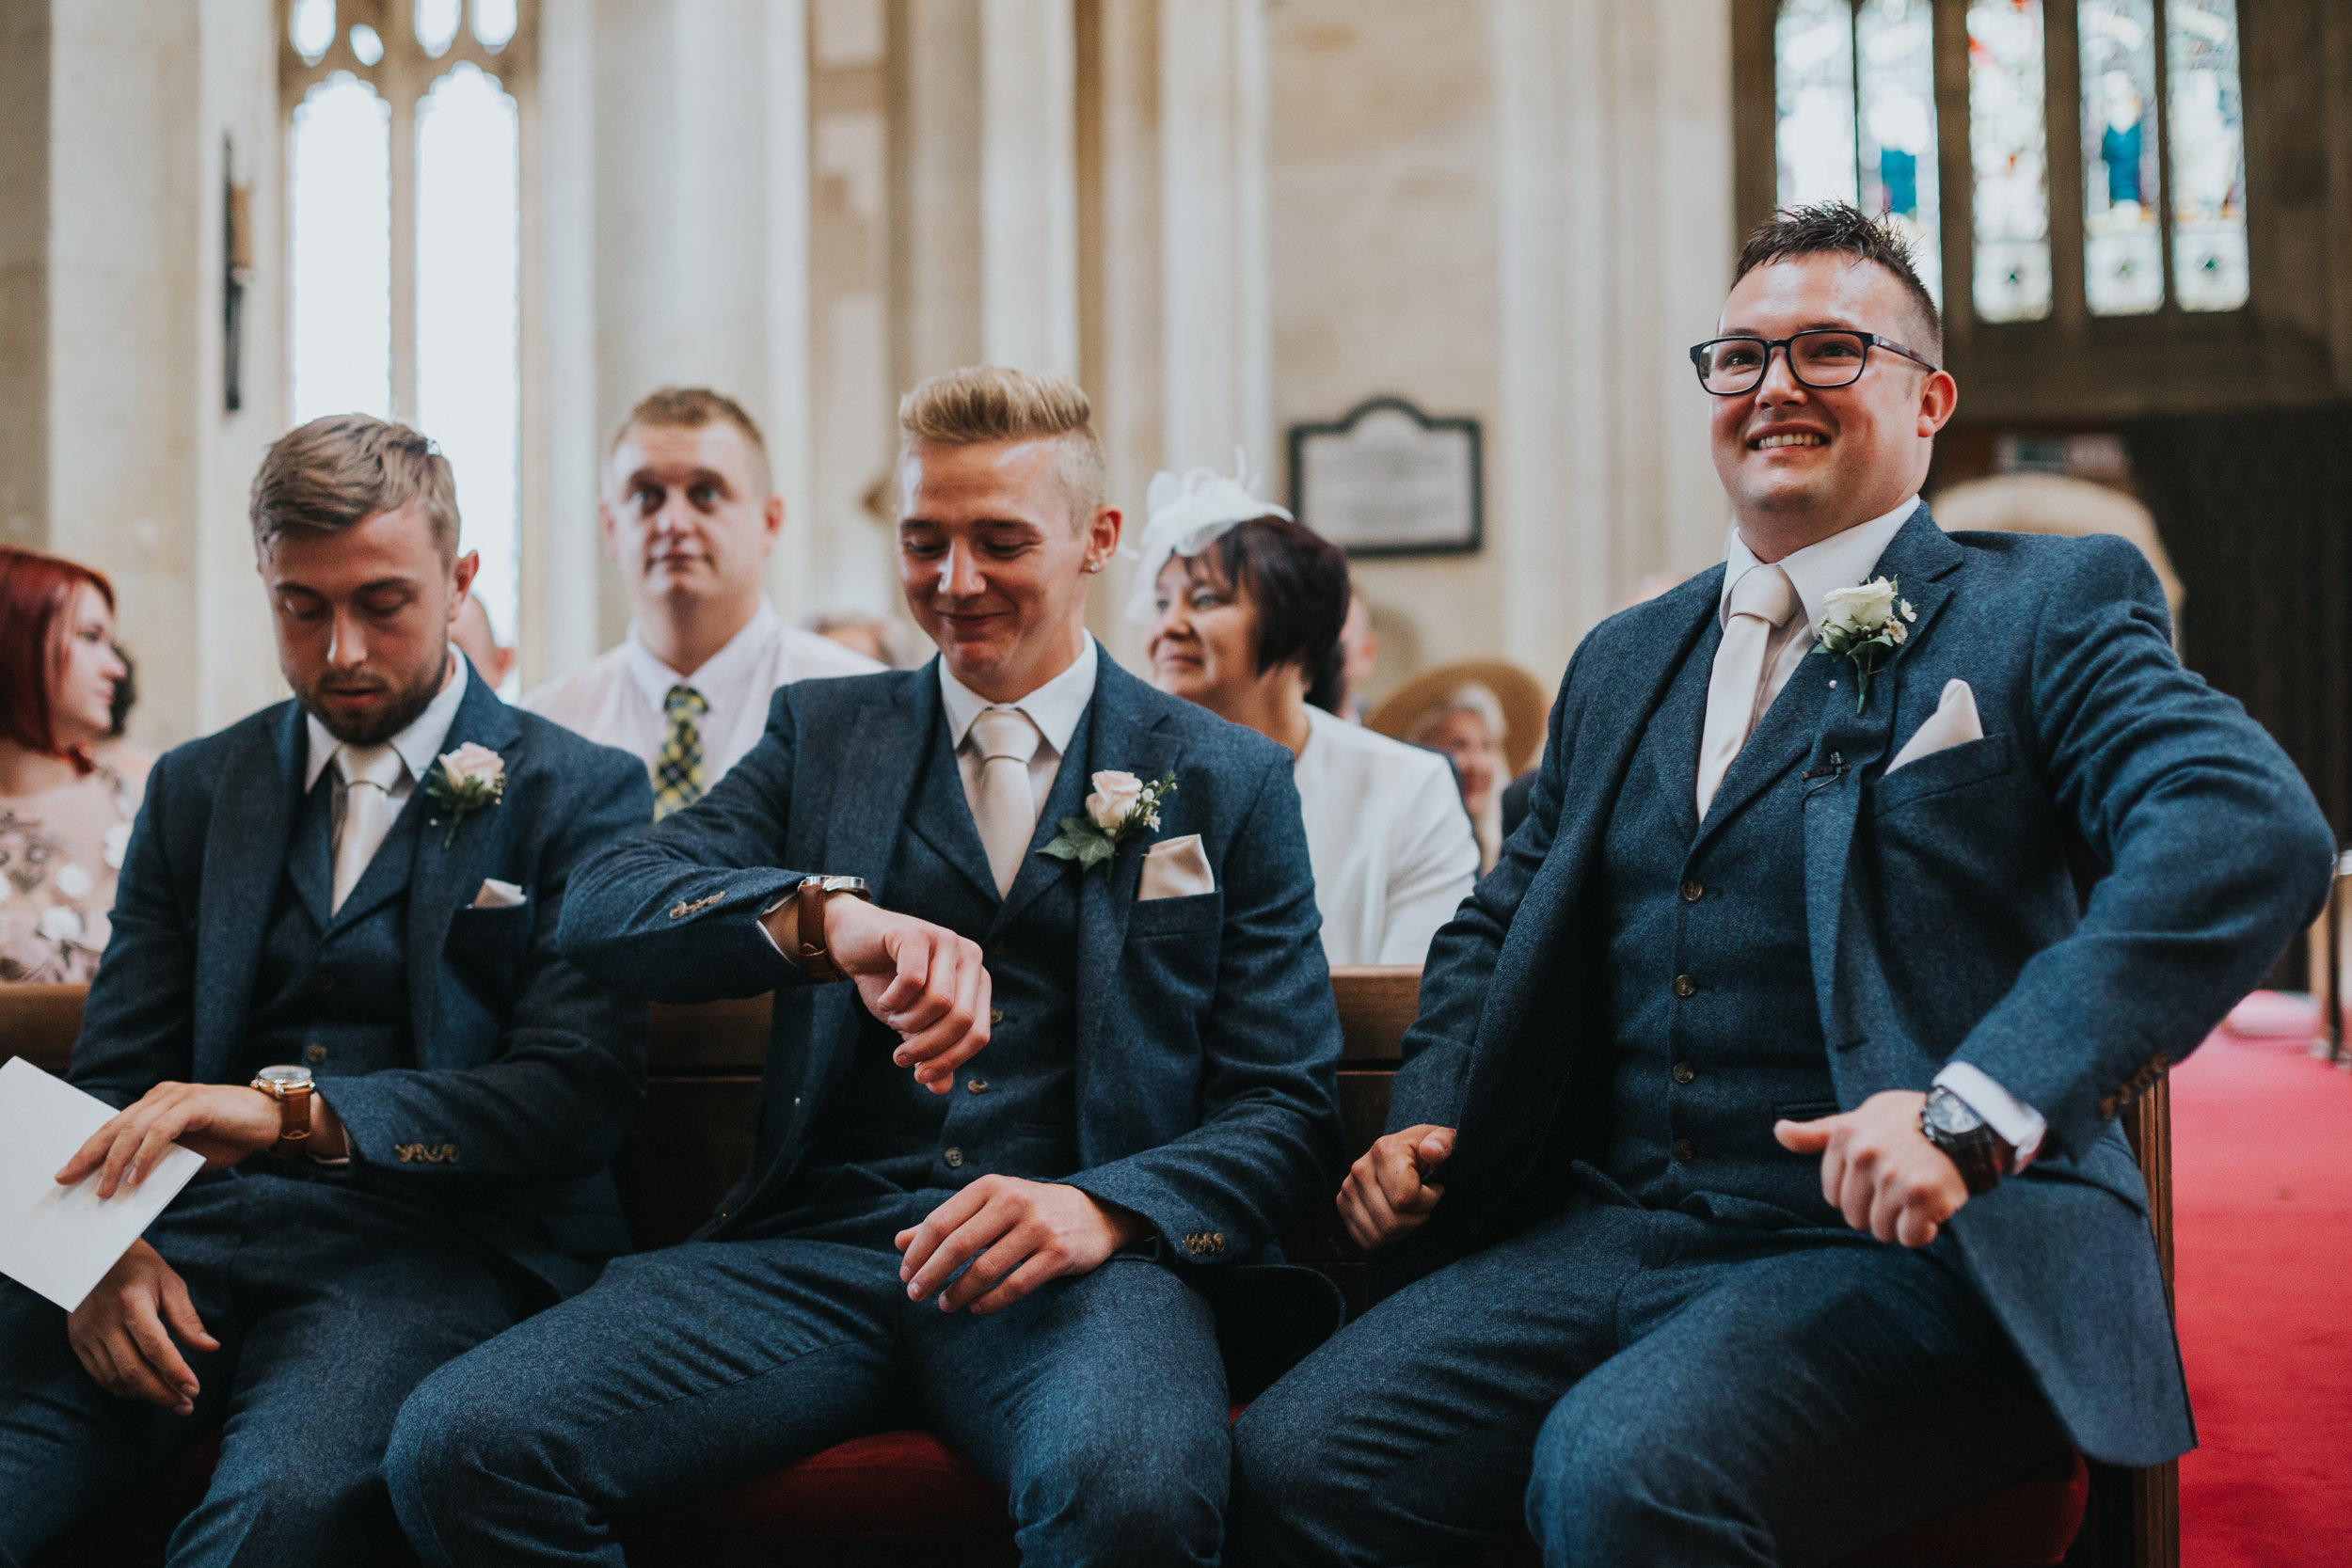 Groom waits inside the church with his groomsmen. Best Man looking at his watch.